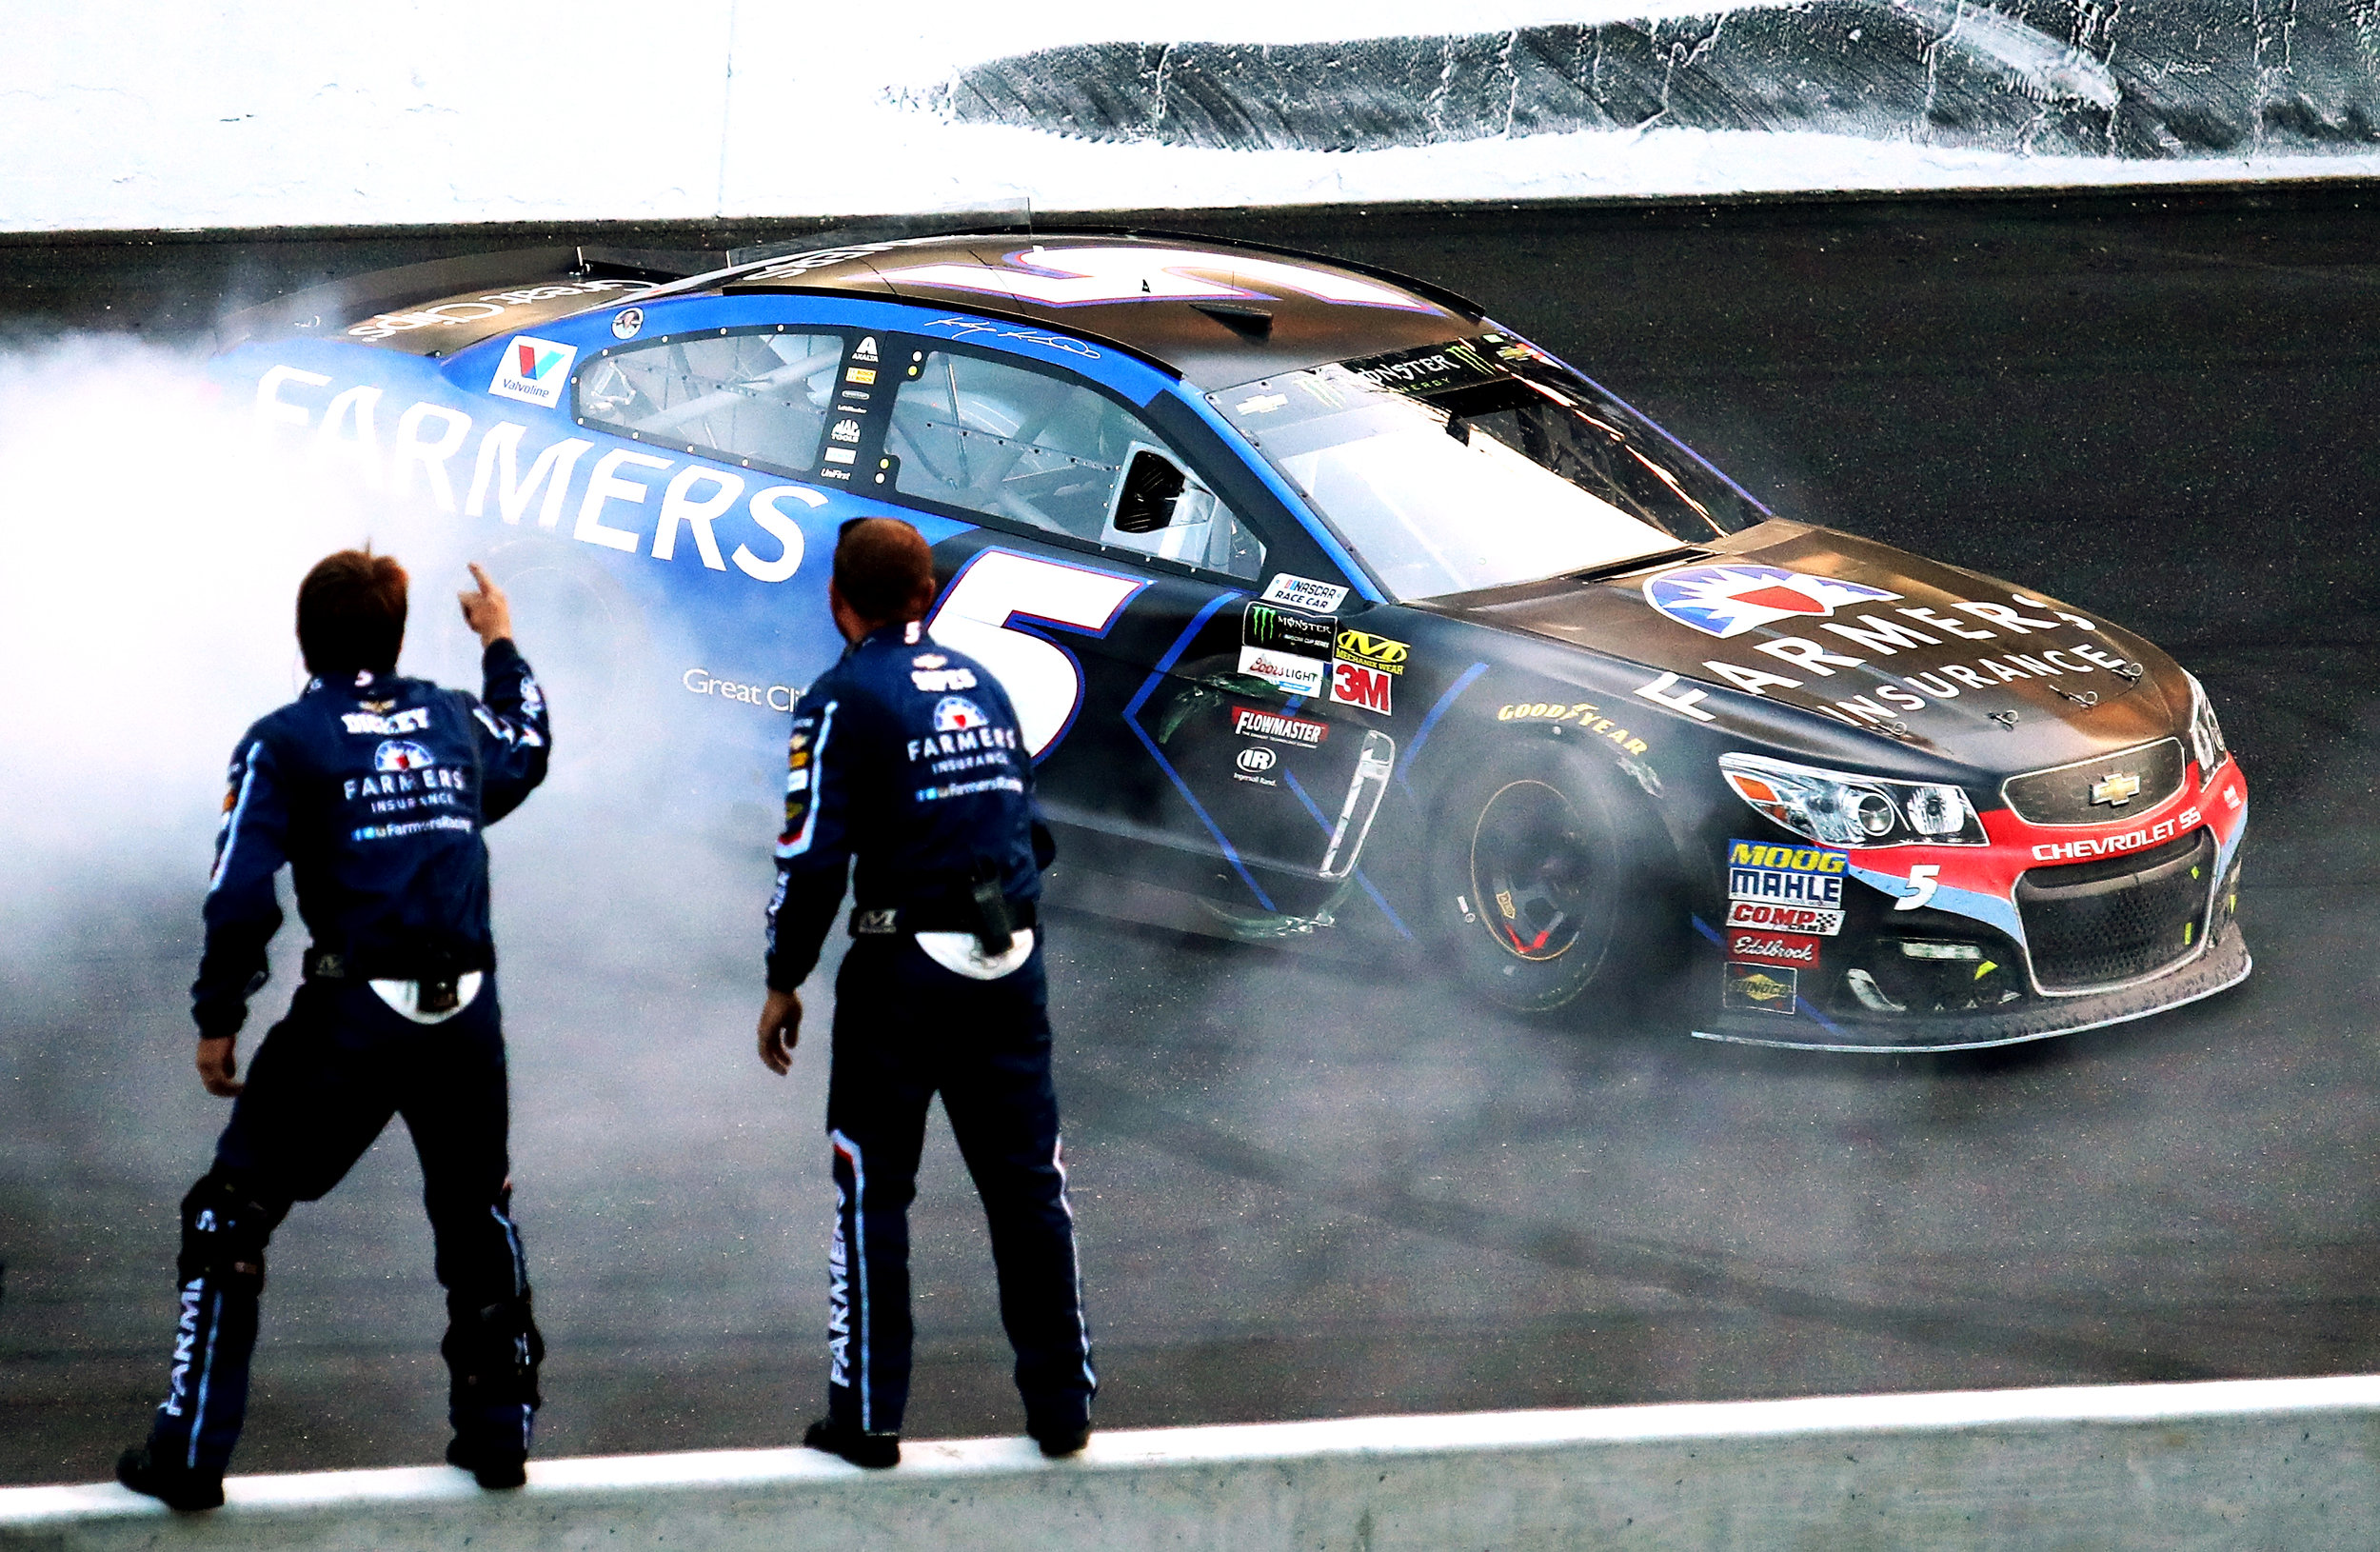 INDIANAPOLIS, IN - JULY 23: Kasey Kahne, driver of the #5 Farmers Insurance Chevrolet, celebrates with a burnout after winning the Monster Energy NASCAR Cup Series Brickyard 400 at Indianapolis Motorspeedway on July 23, 2017 in Indianapolis, Indiana. (Photo by Tim Bradbury/Getty Images)